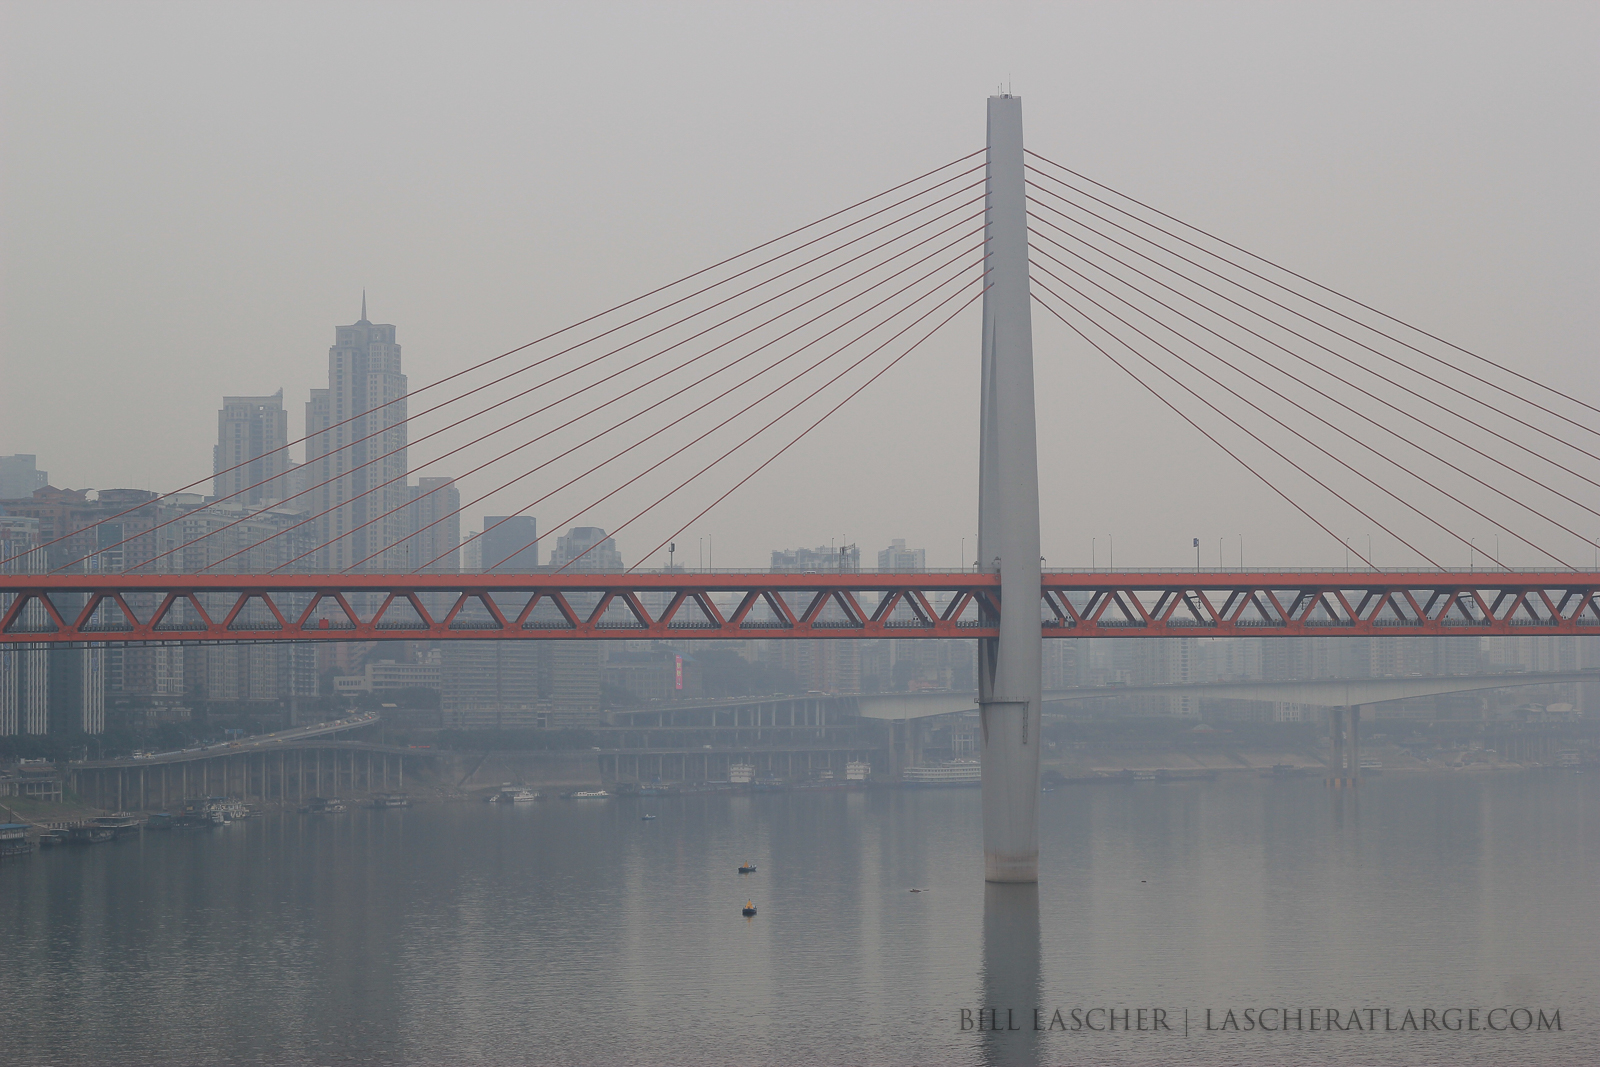 Spanning the Yangtze